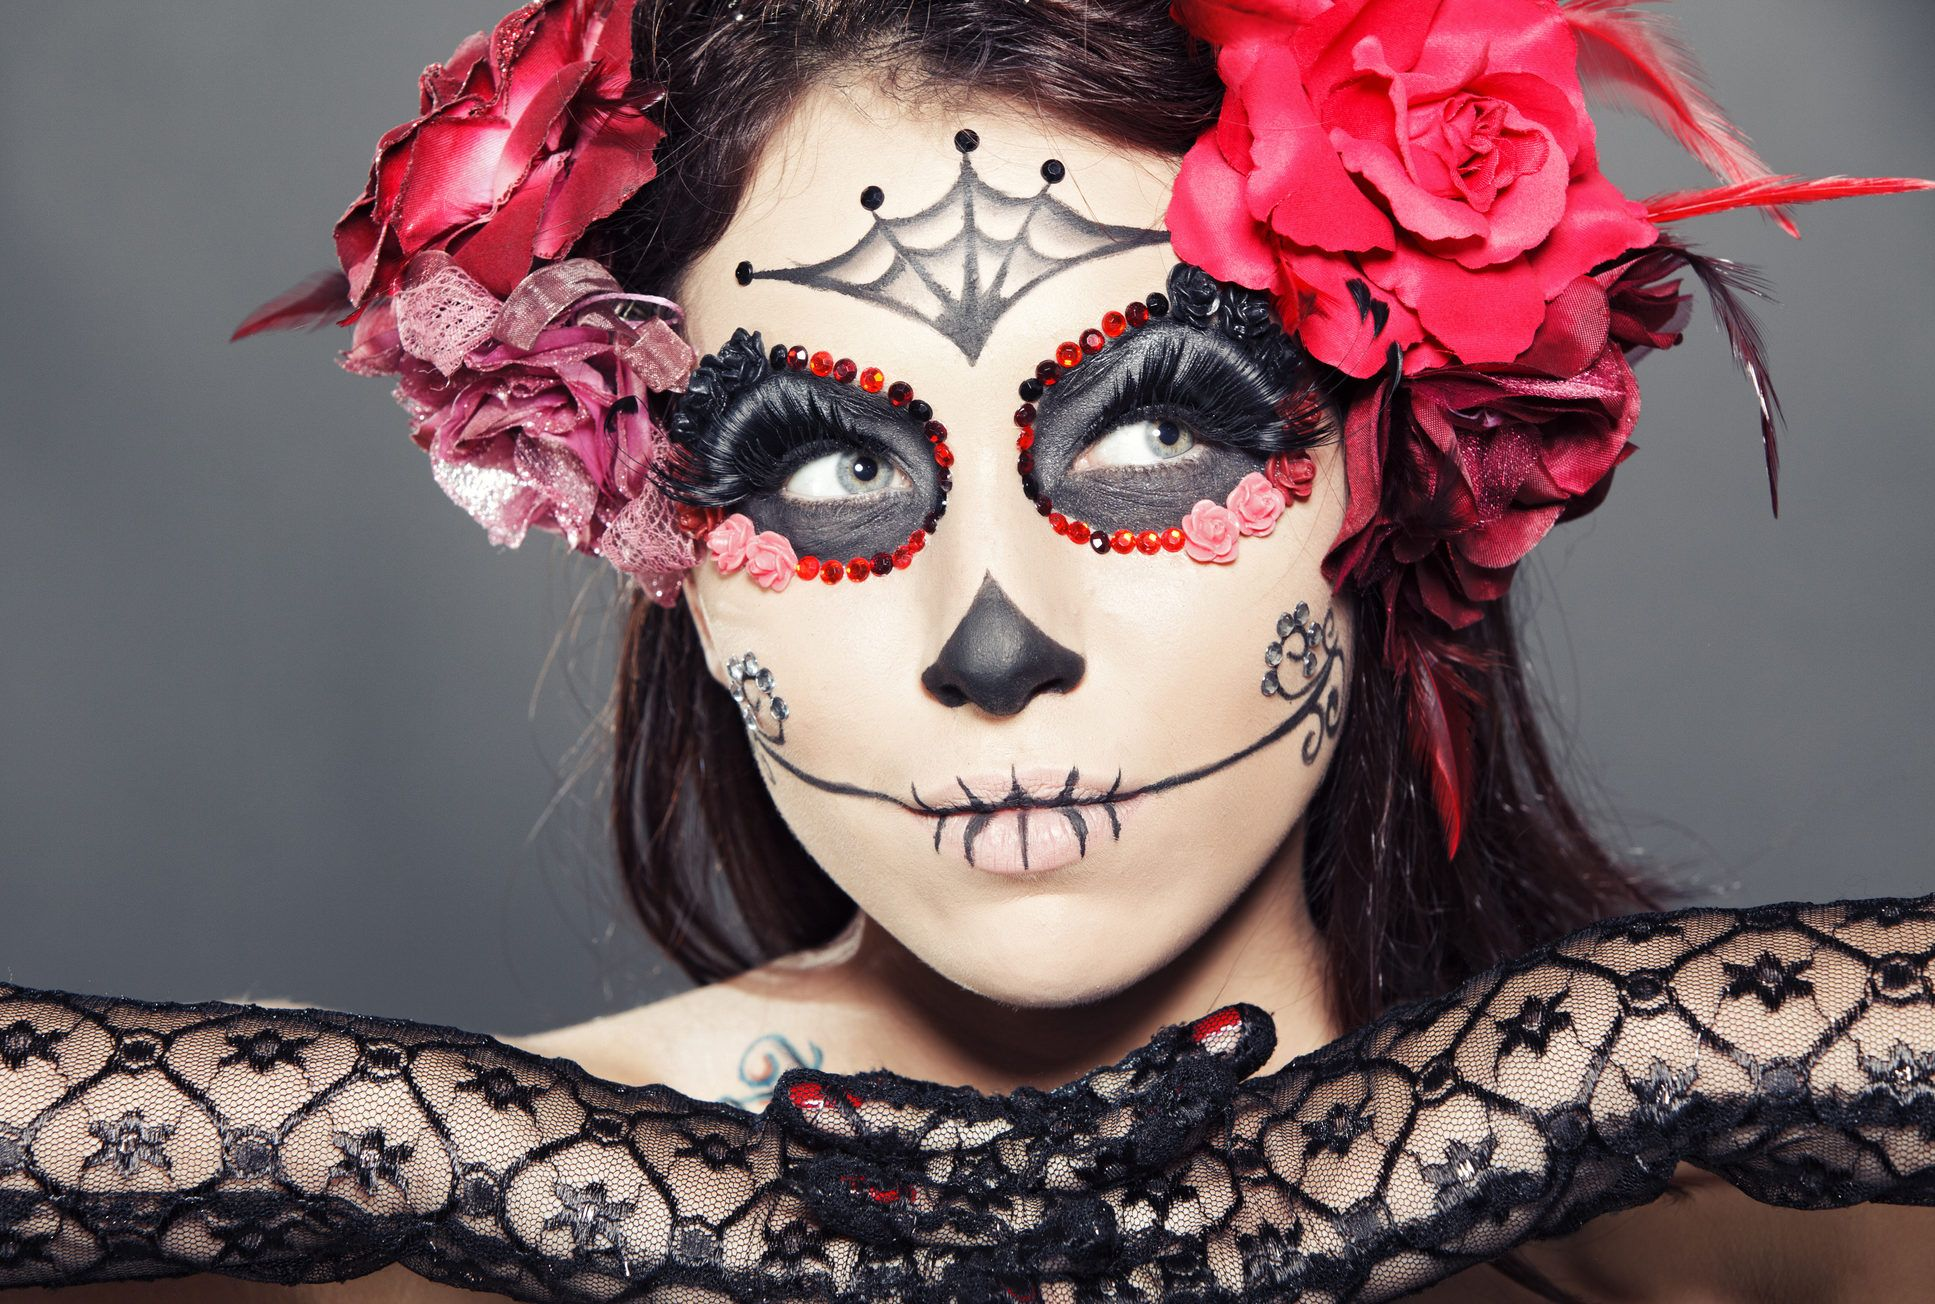 Clown Schminken Suess La Catrina Schminken Easy Make Up Tutorial All Bonez Mottoparty